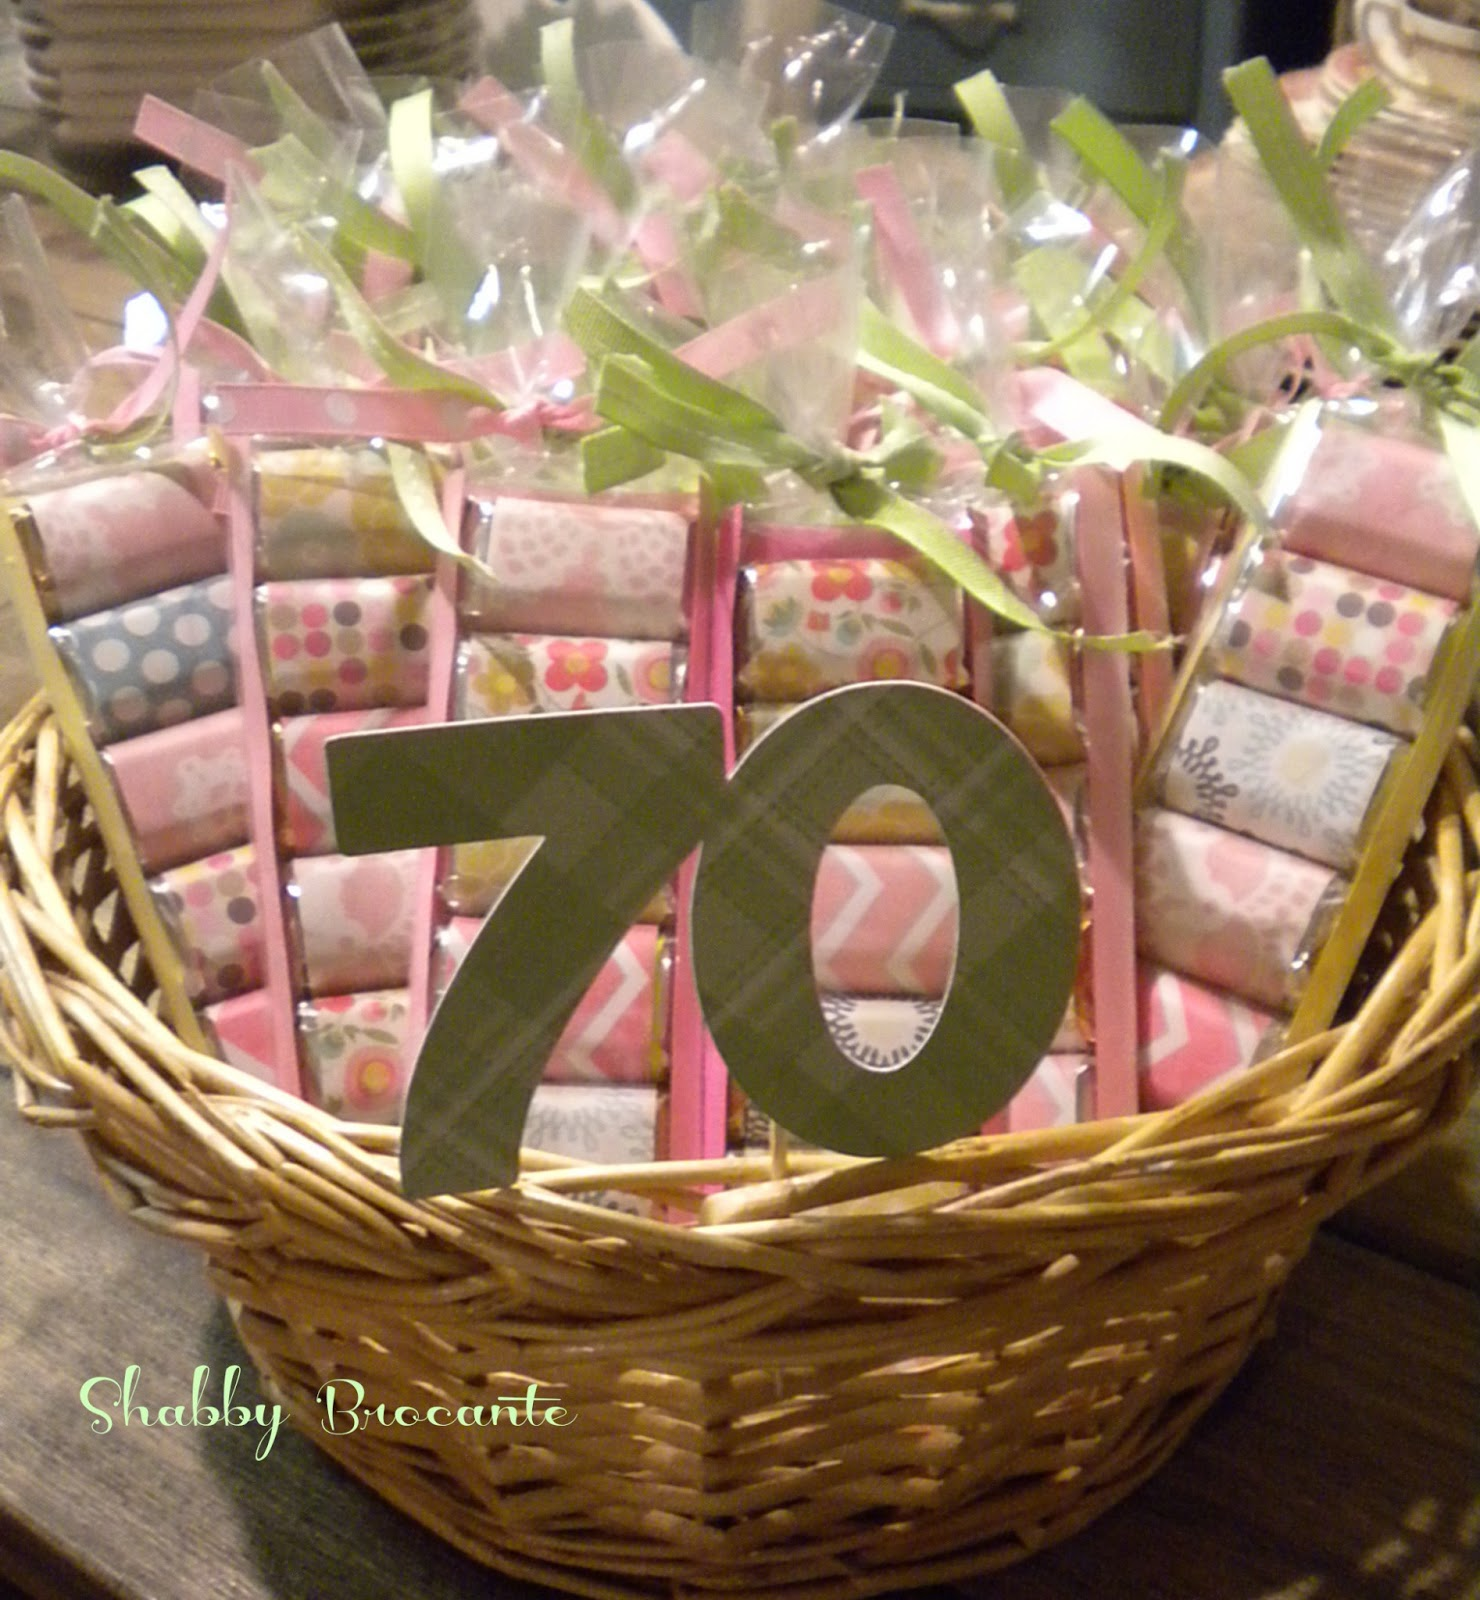 Shabby Brocante Hersey 39 S Adult Party Favors